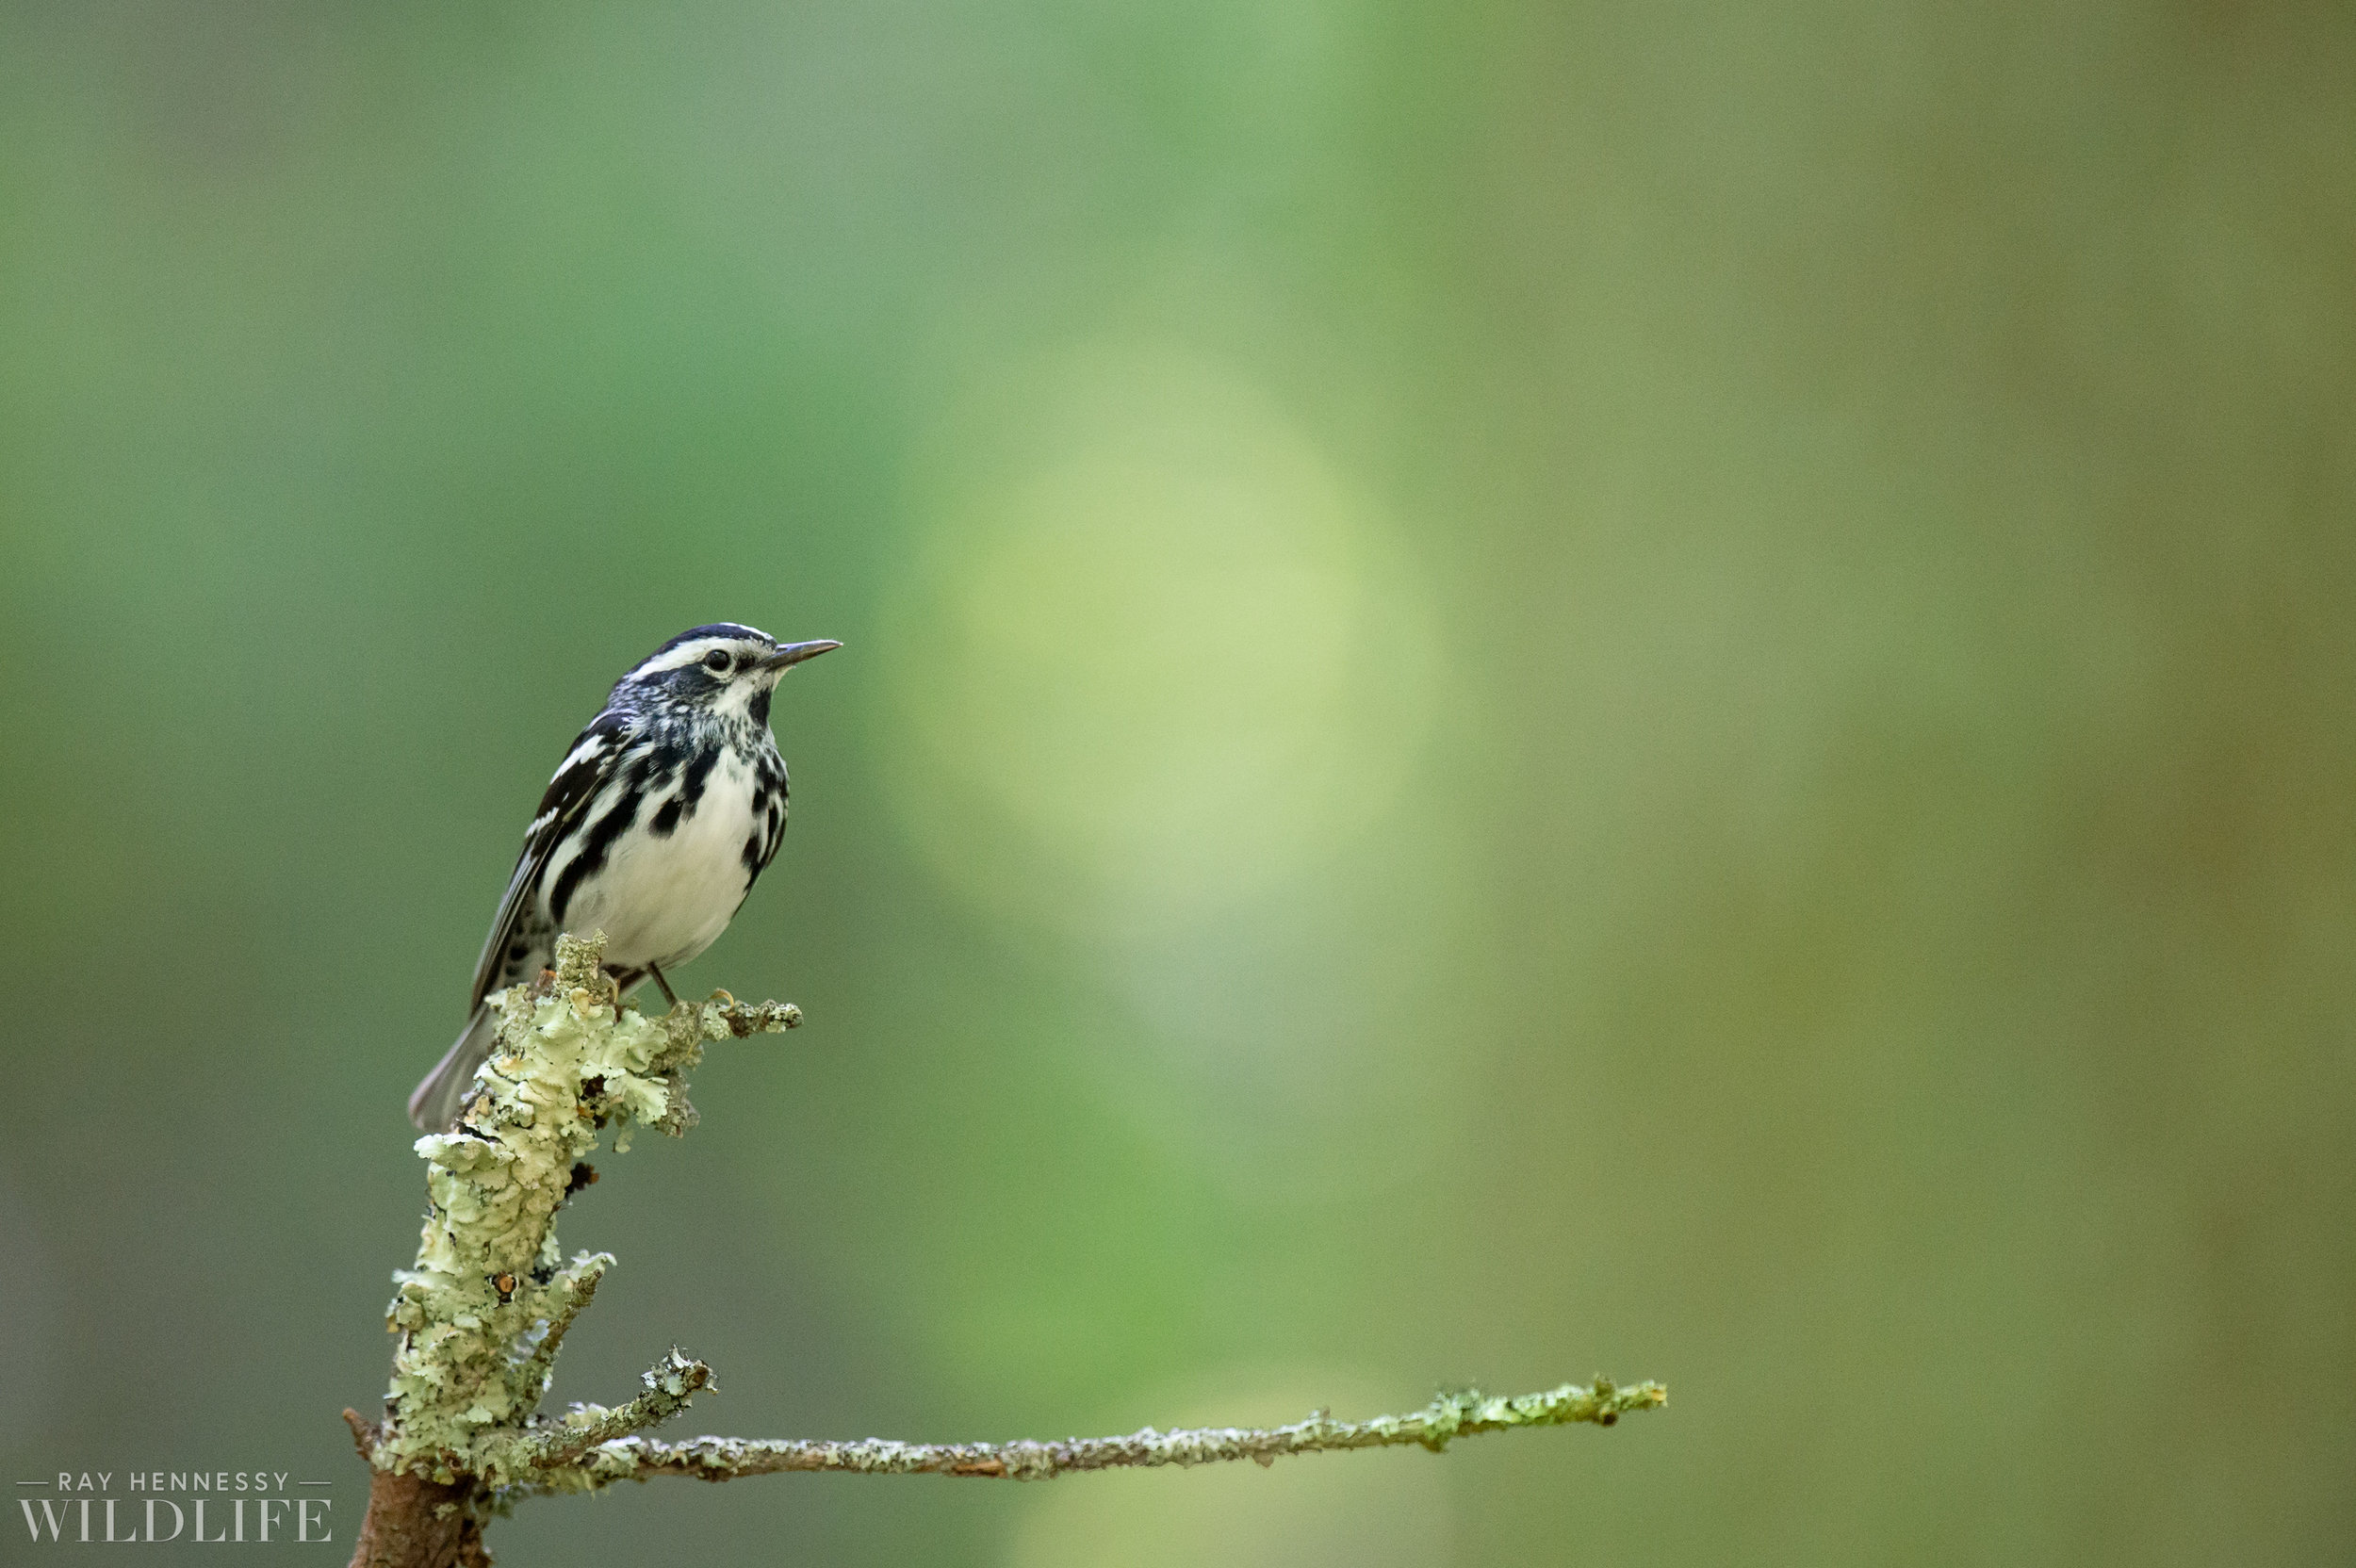 006_nothern-new-jersey-warblers.jpg